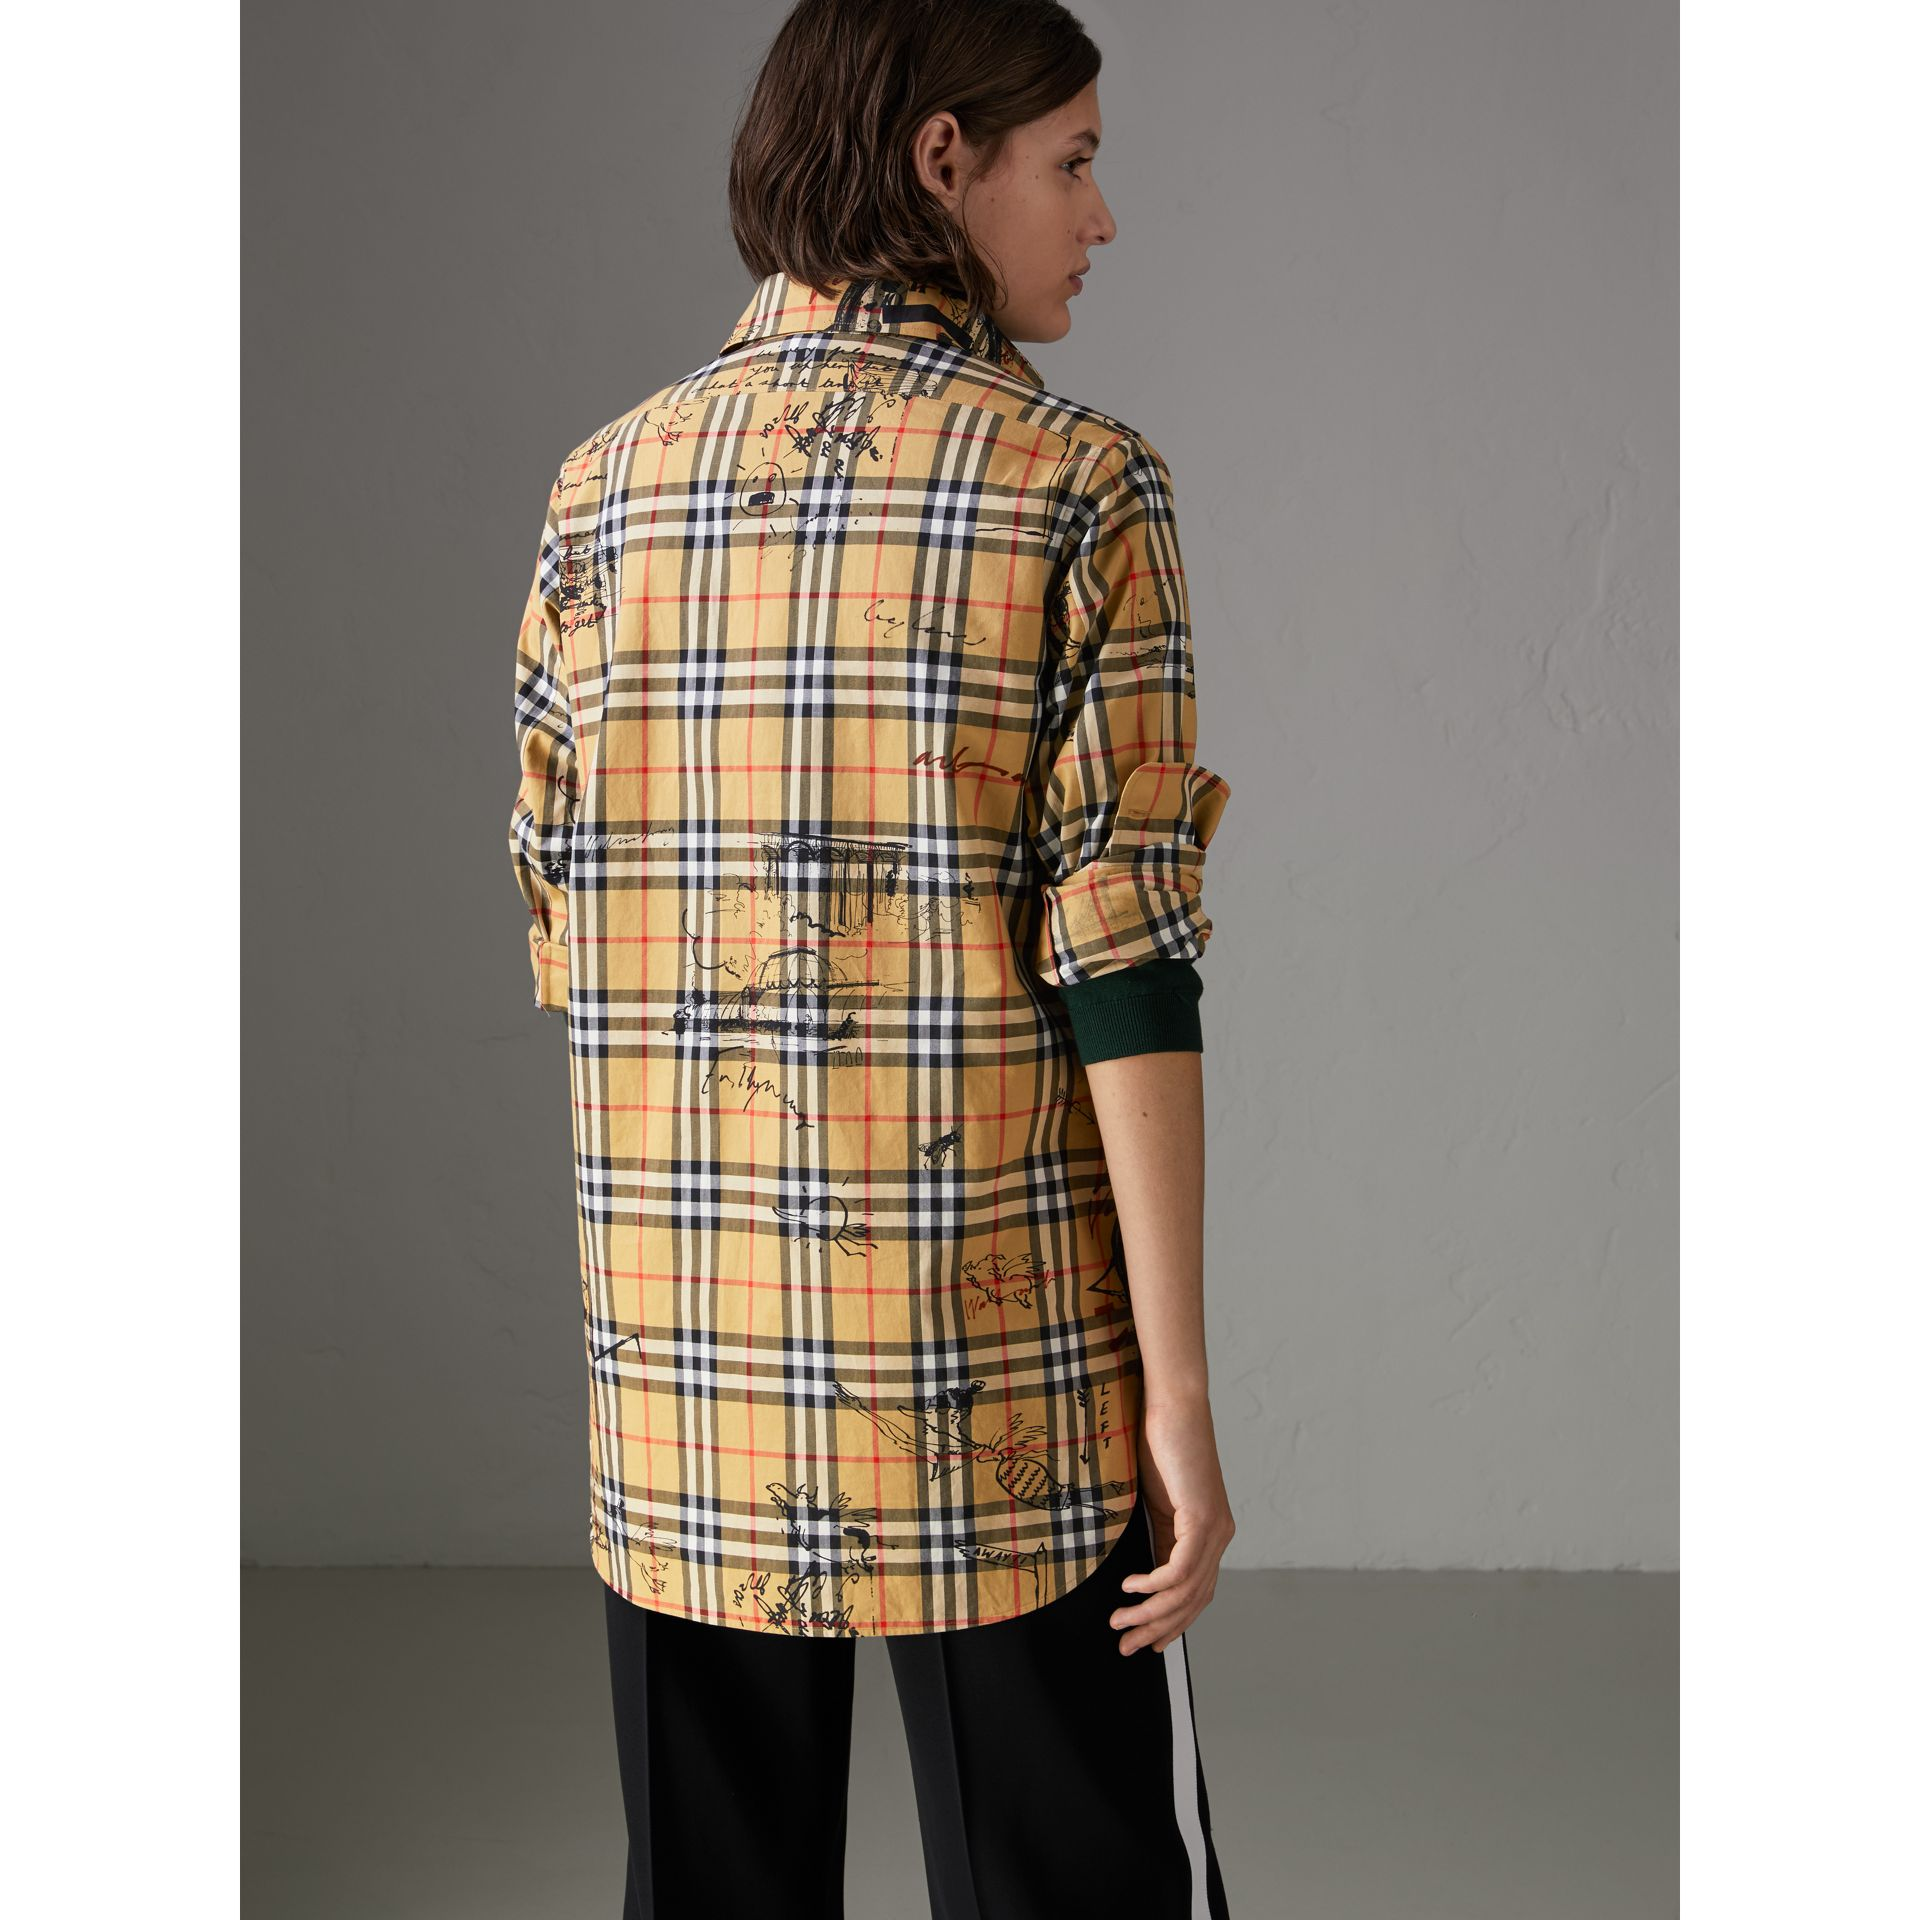 Postcard Print Vintage Check Tunic Shirt in Antique Yellow - Women | Burberry - gallery image 2